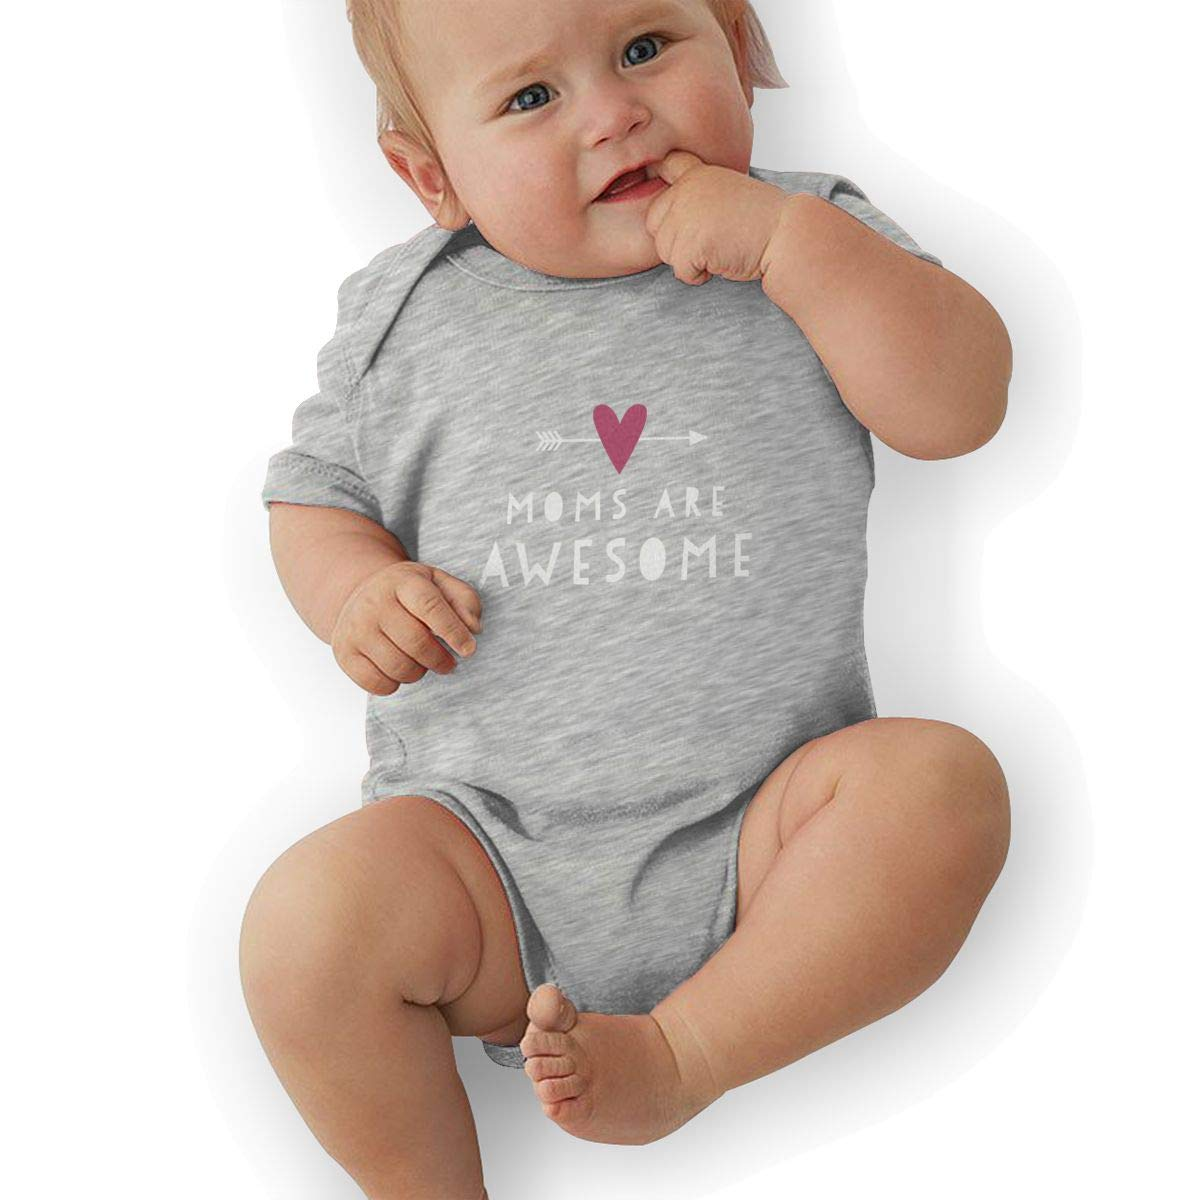 Toddler Baby Girls Bodysuit Short-Sleeve Onesie Moms are Awesome Print Outfit Winter Pajamas